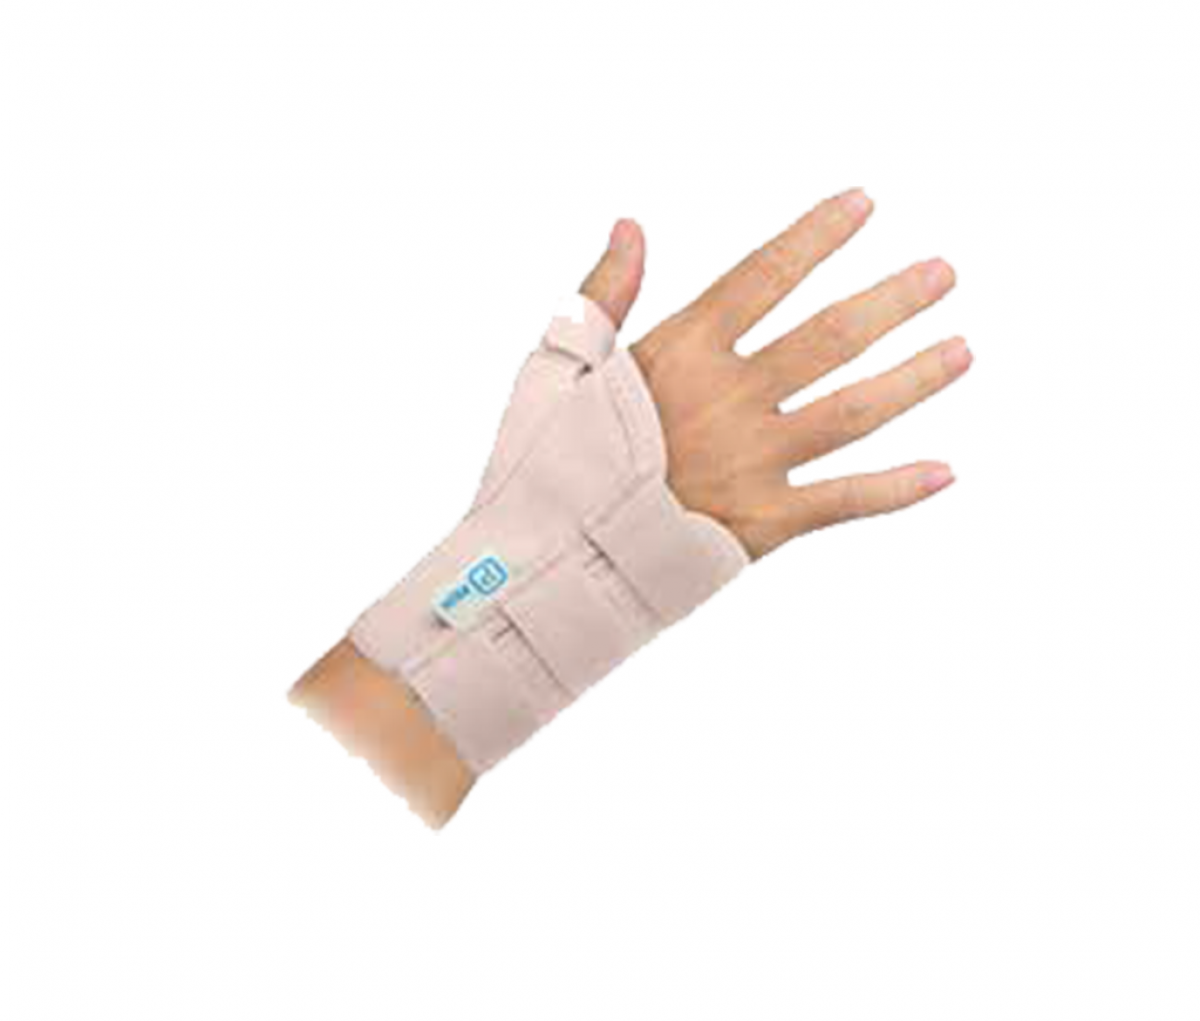 SHORT WRIST SUPPORT WITH THUMB (13CM) - SL C700